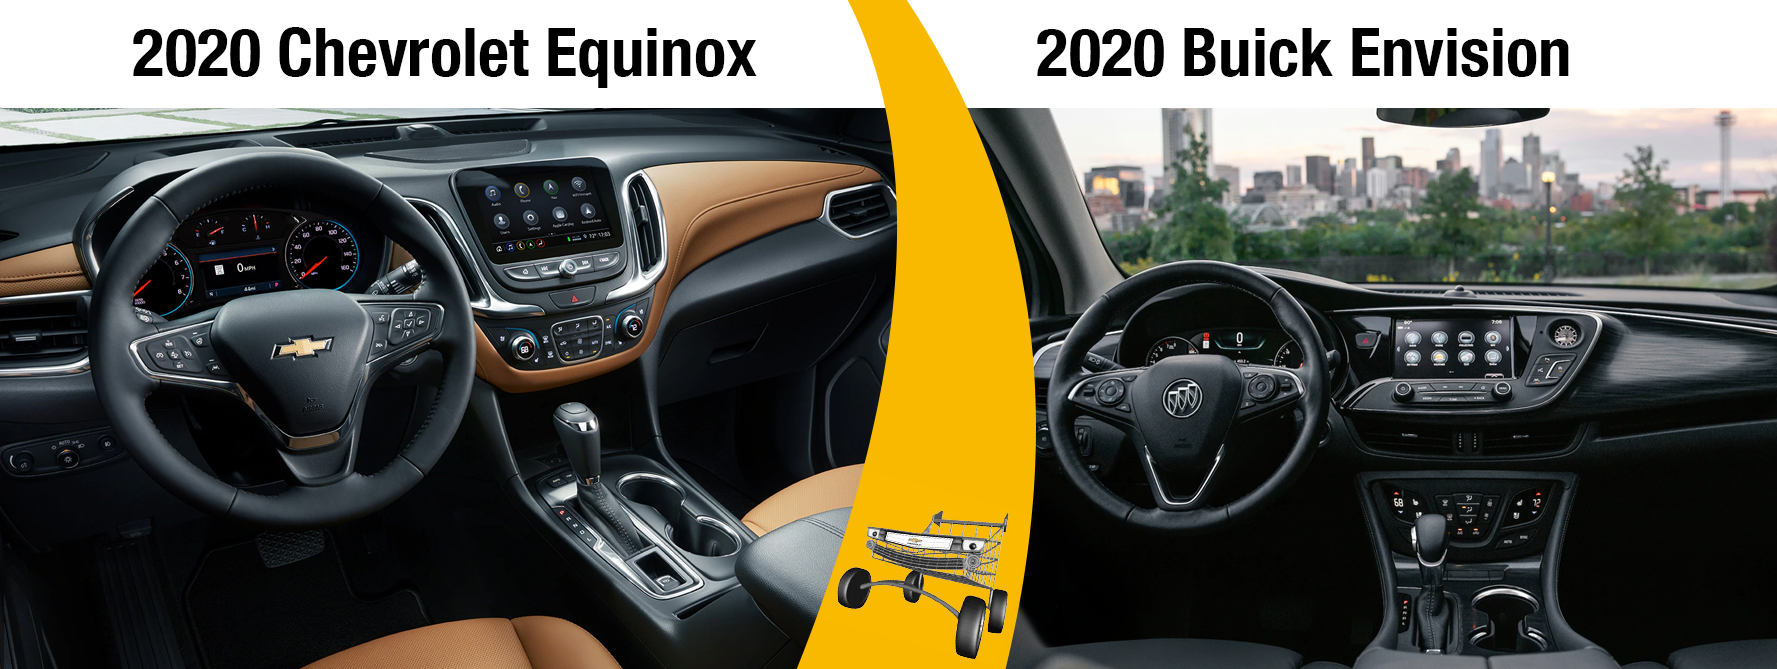 2020 Chevy Equinox vs 2020 Buick Envision Safety Features